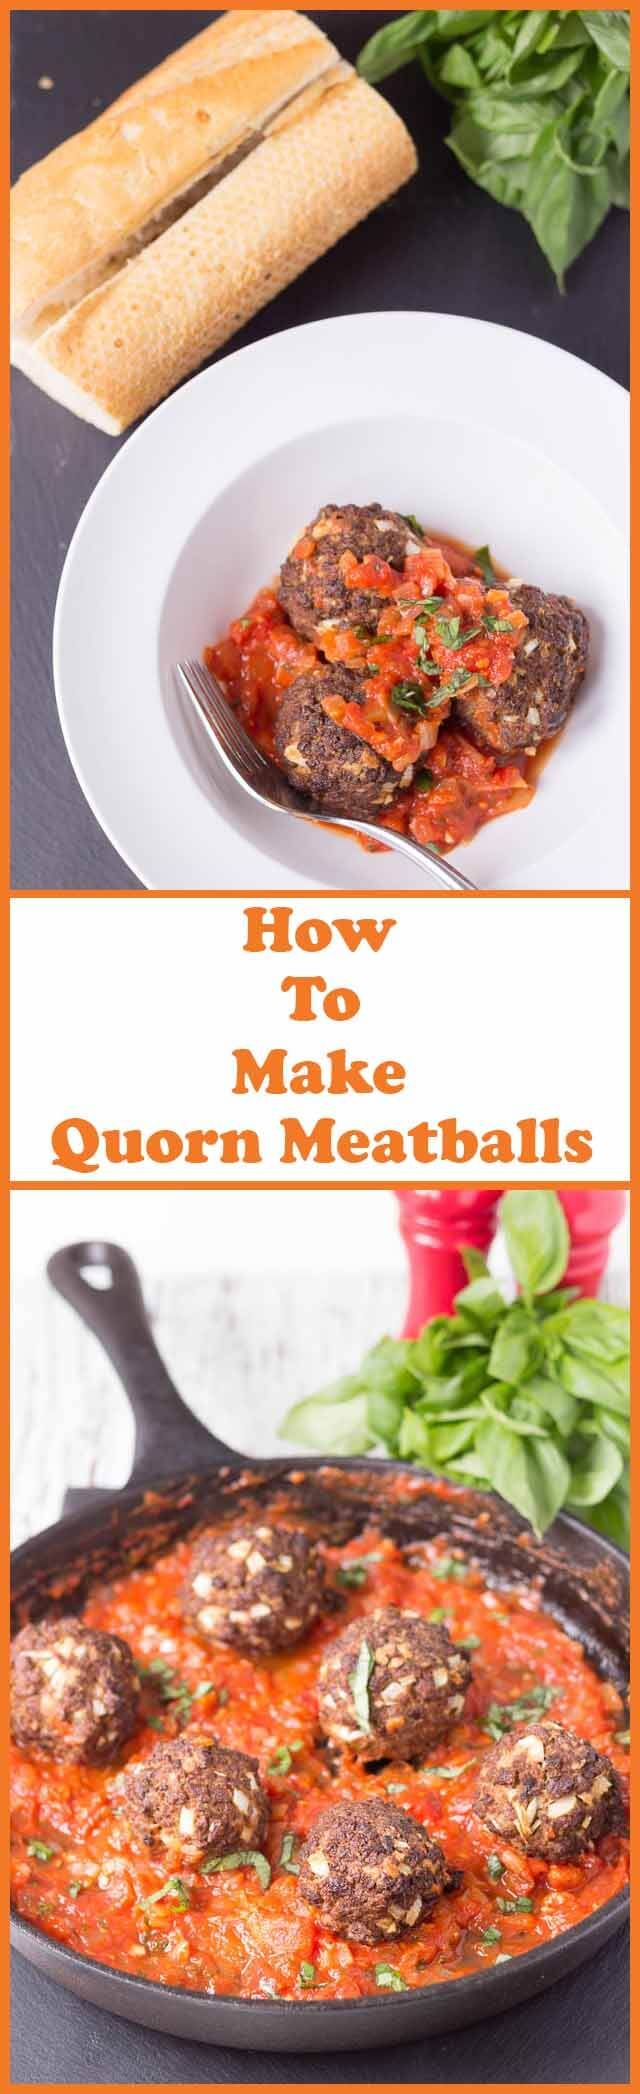 This Quorn meatballs recipe shows you how to make tasty Quorn meatballs in under one hour. Baked in the oven and with a delicious tomato sauce this is an excellent meat free weeknight family meal! via @neilhealthymeal